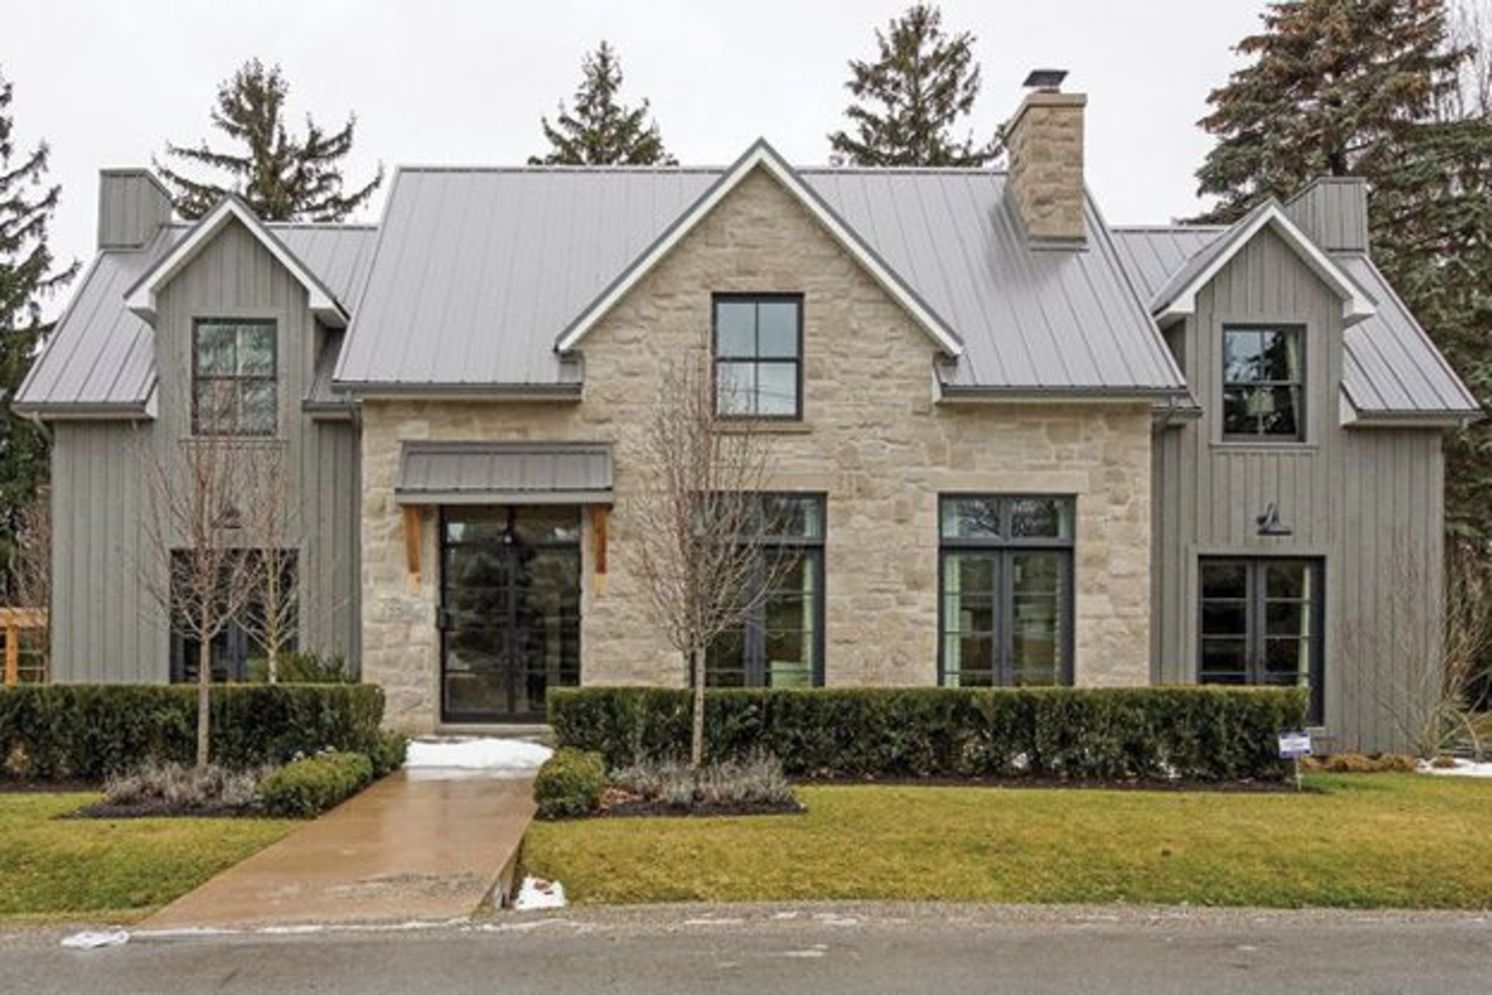 Modern house with new farmhouse exterior design pulling out country charm and warm welcoming display Image 38